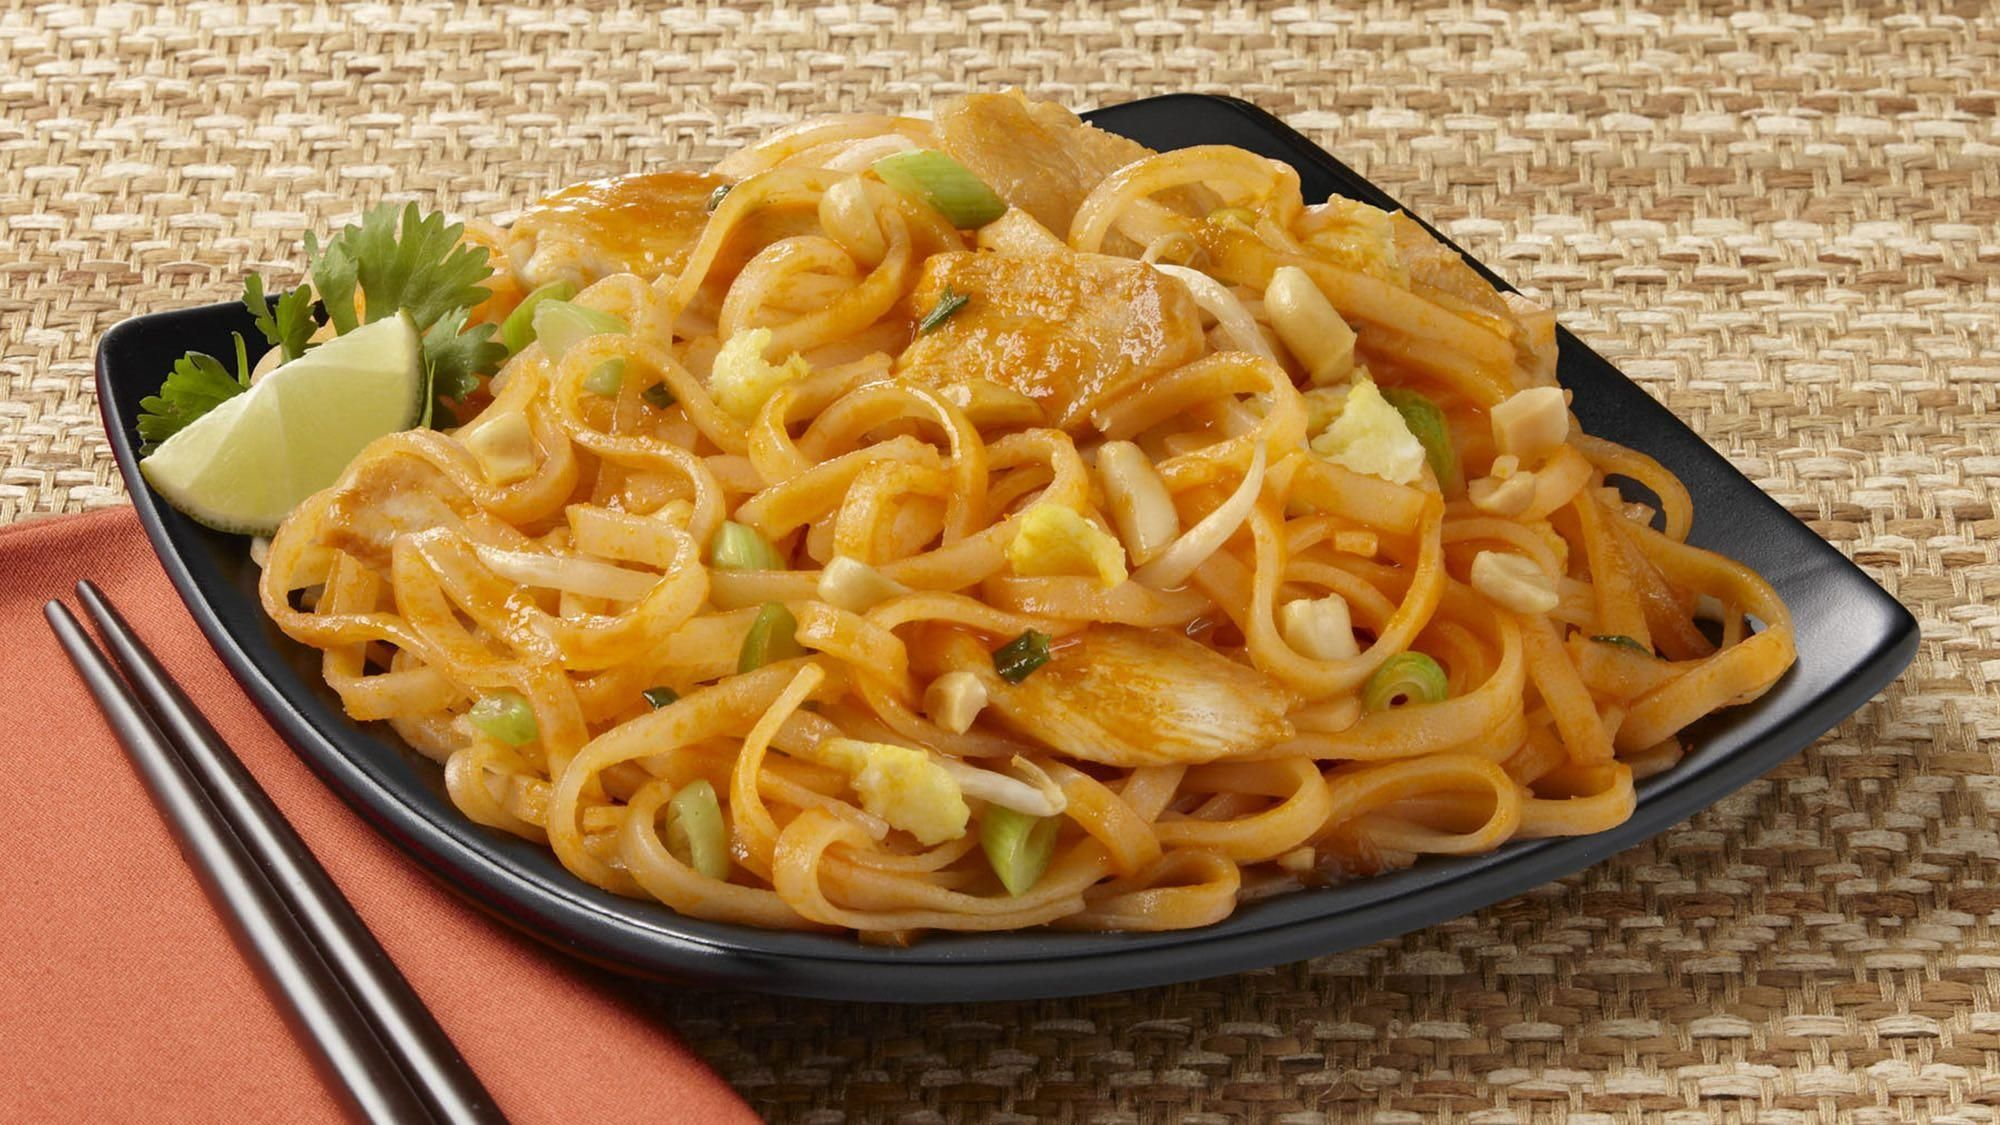 Thai Kitchen Pad Thai Check Out Easy Chicken Pad Thaiit's So Easy To Make  Sauces